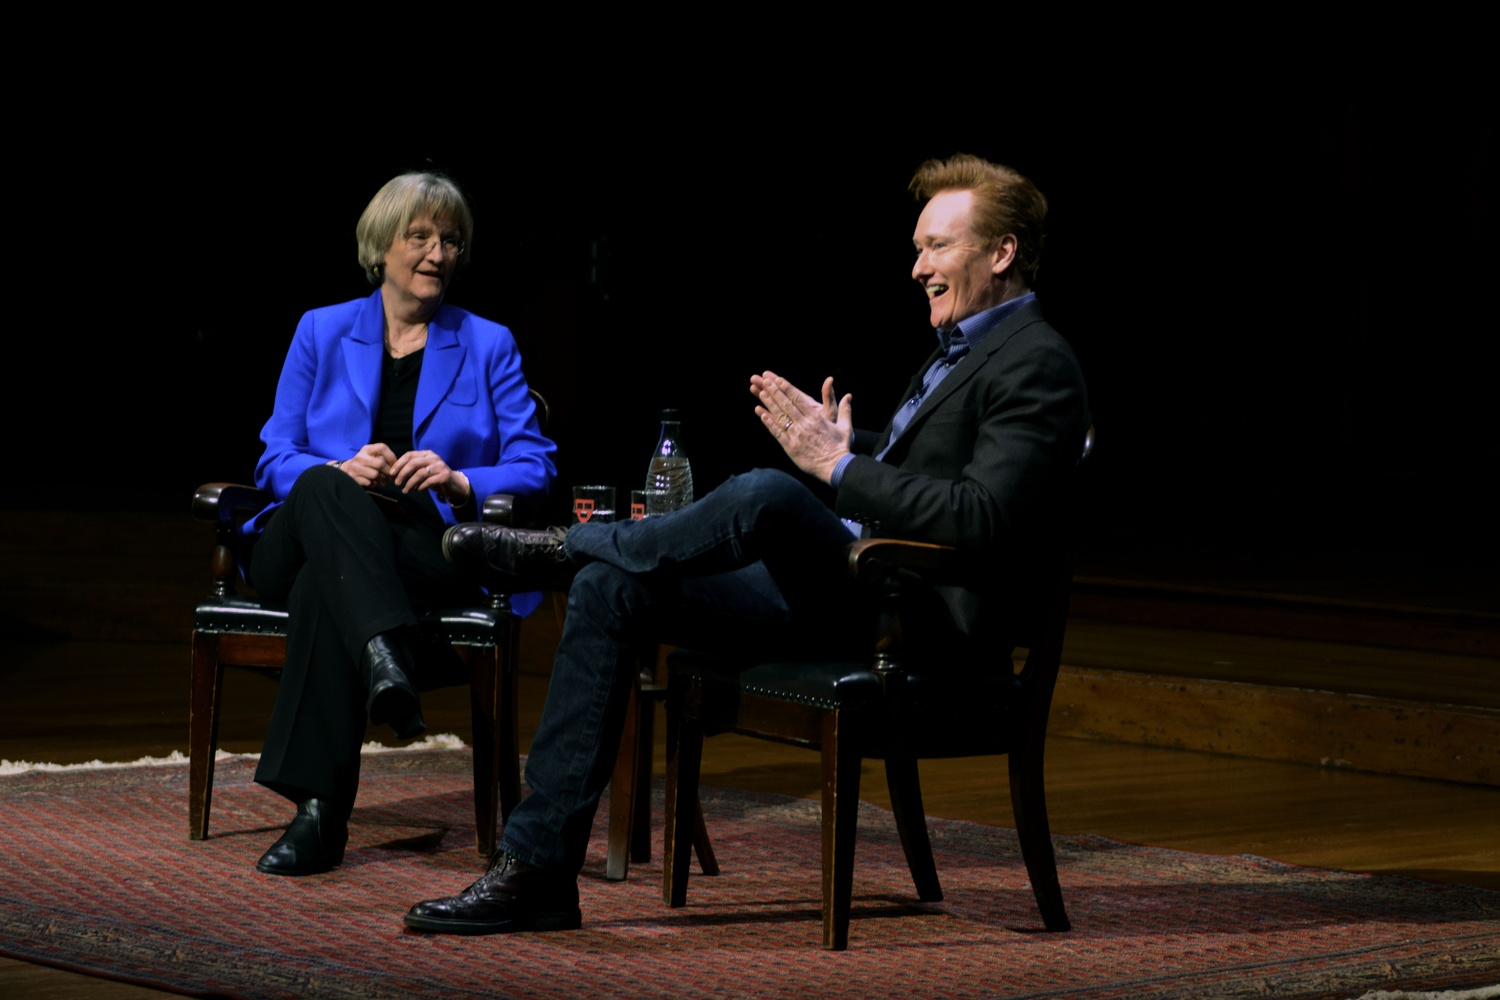 Conan C. O'Brien '85 discusses the importance of a liberal arts education with Drew G. Faust in Sanders Theatre in 2016.